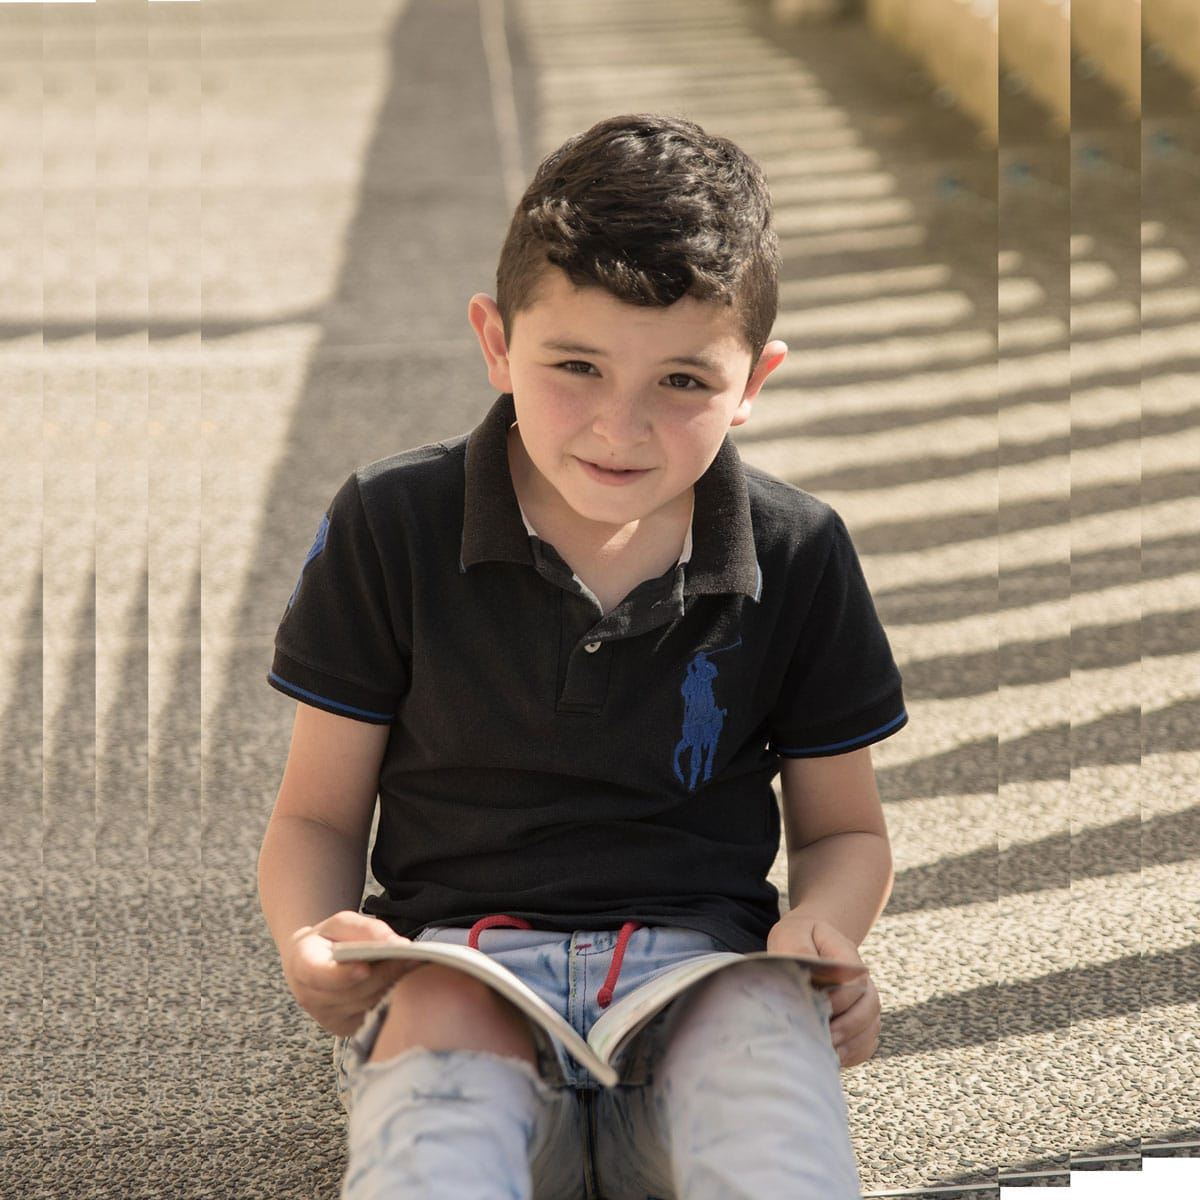 USA Reads - Closing the reading gap in kids